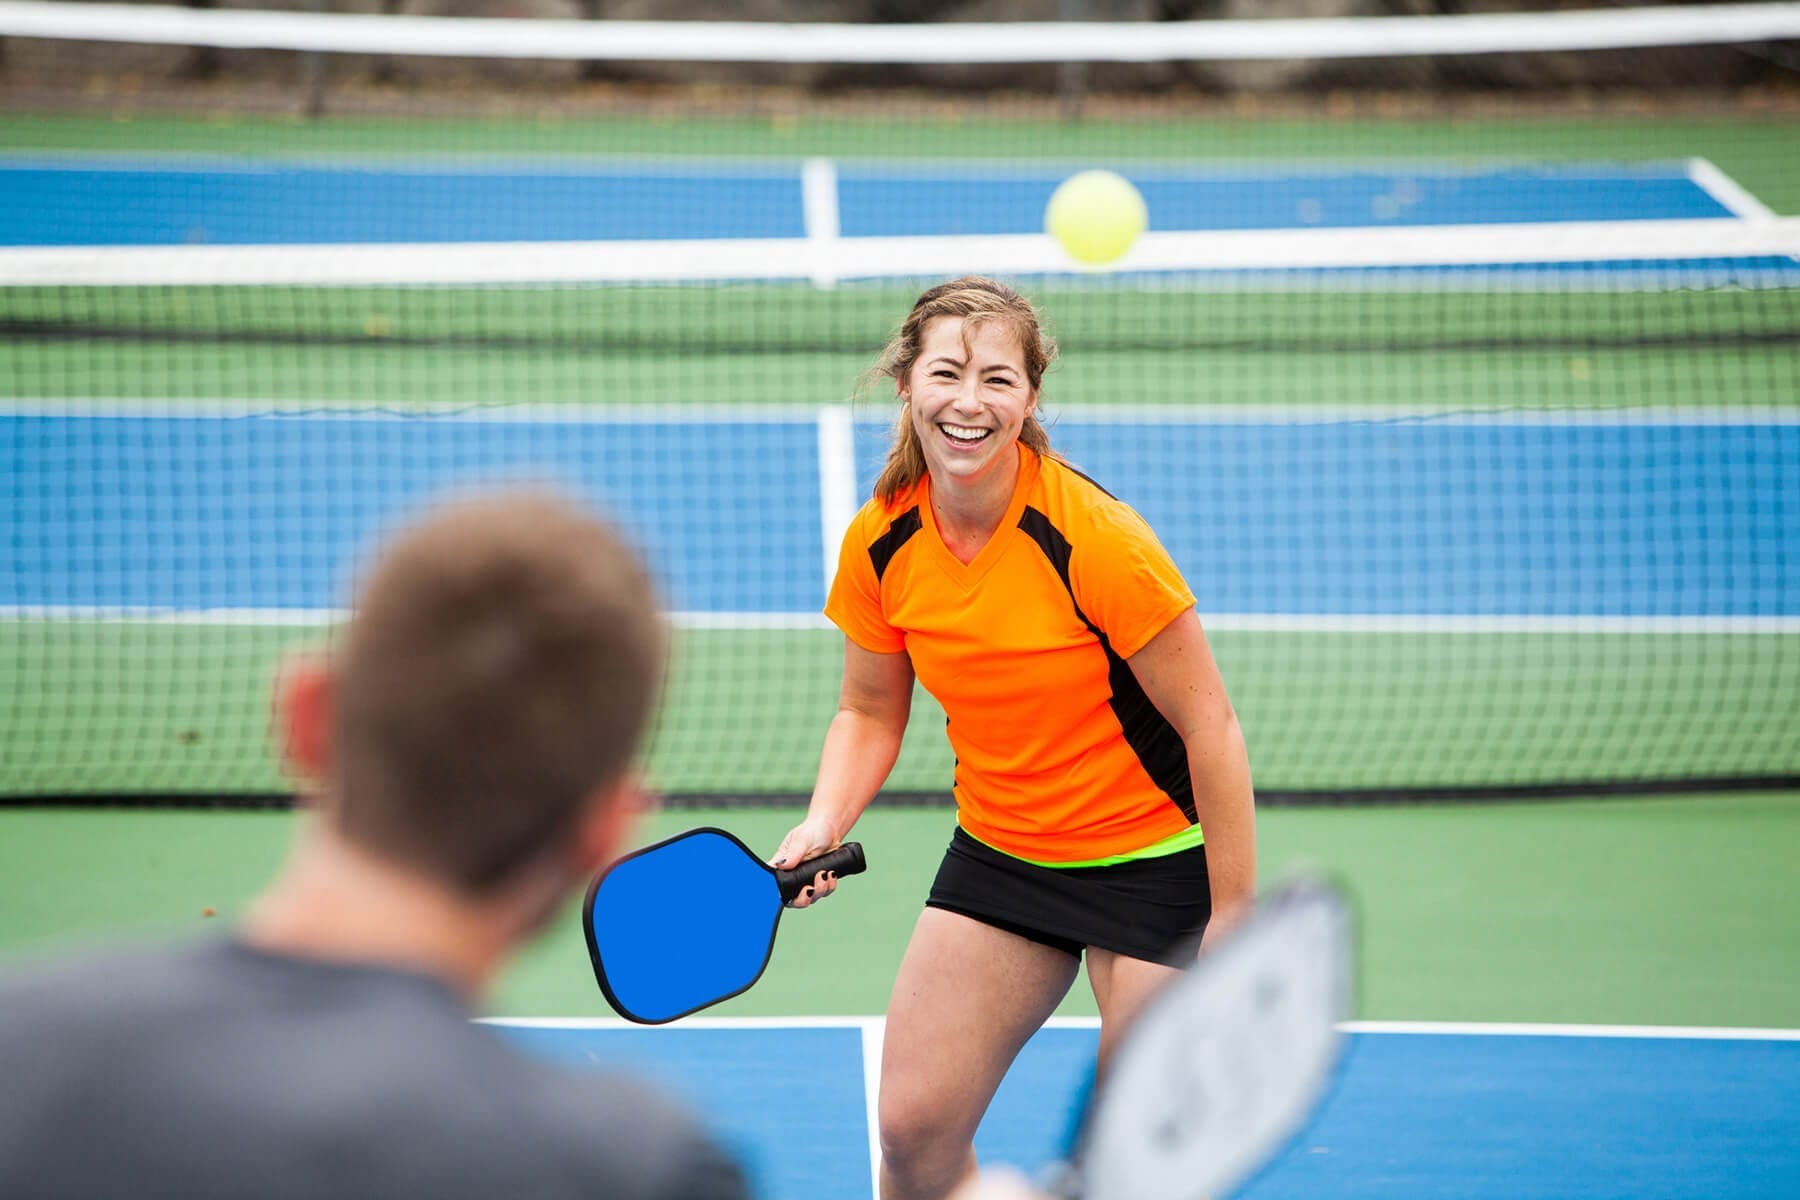 Naples Reserve pickleball